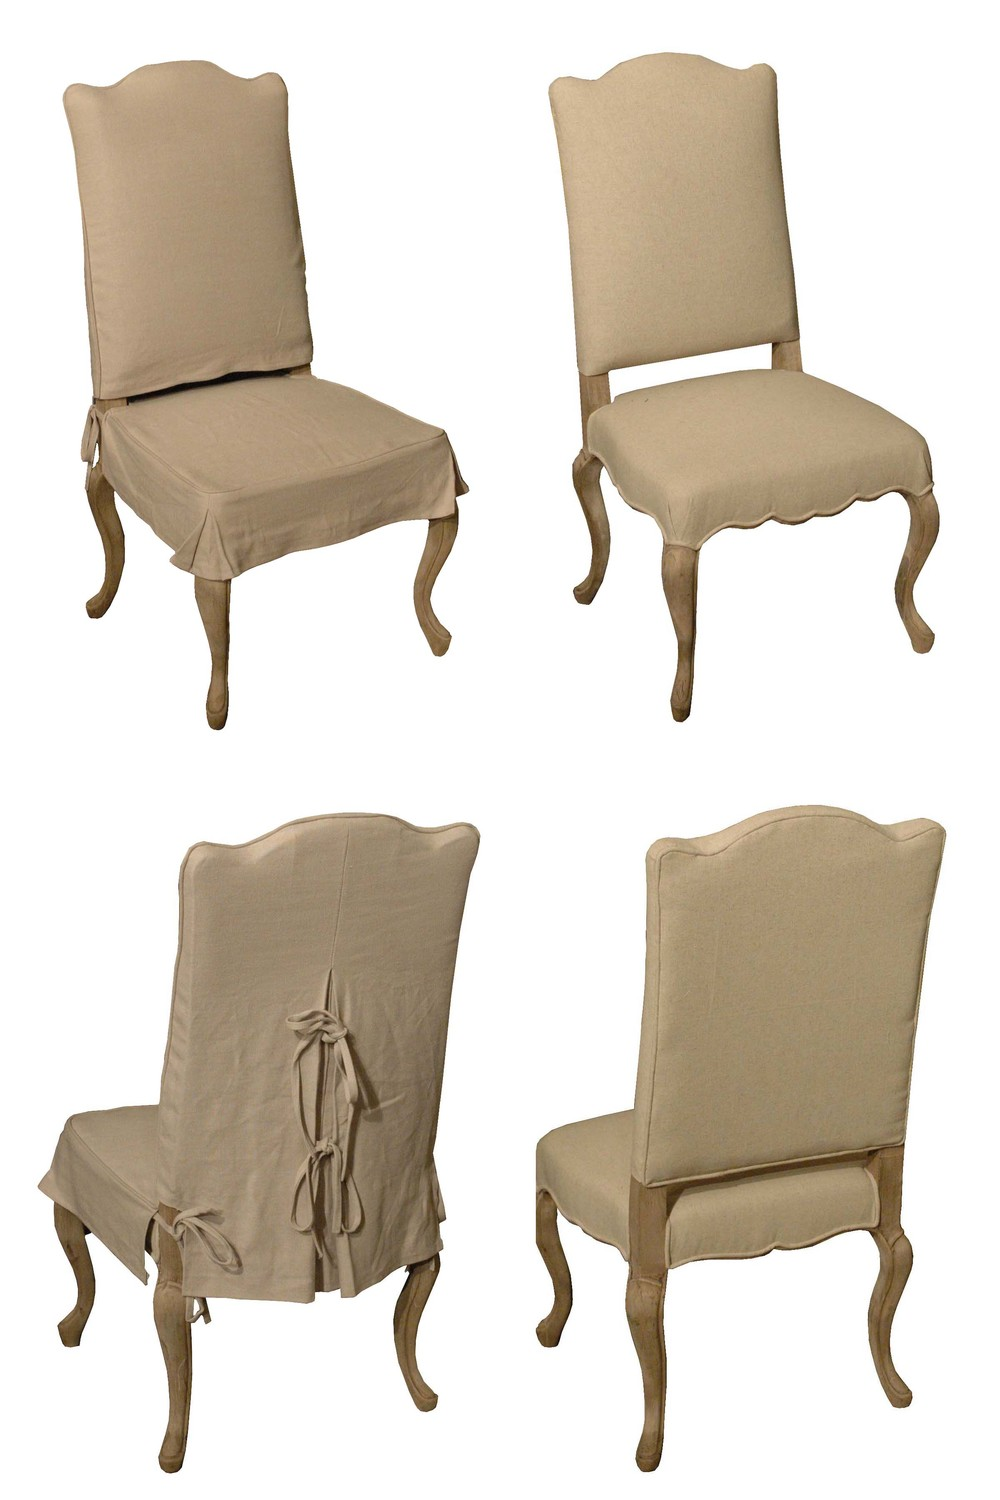 GJ Styles - Norma Dining Chair with Slip Cover